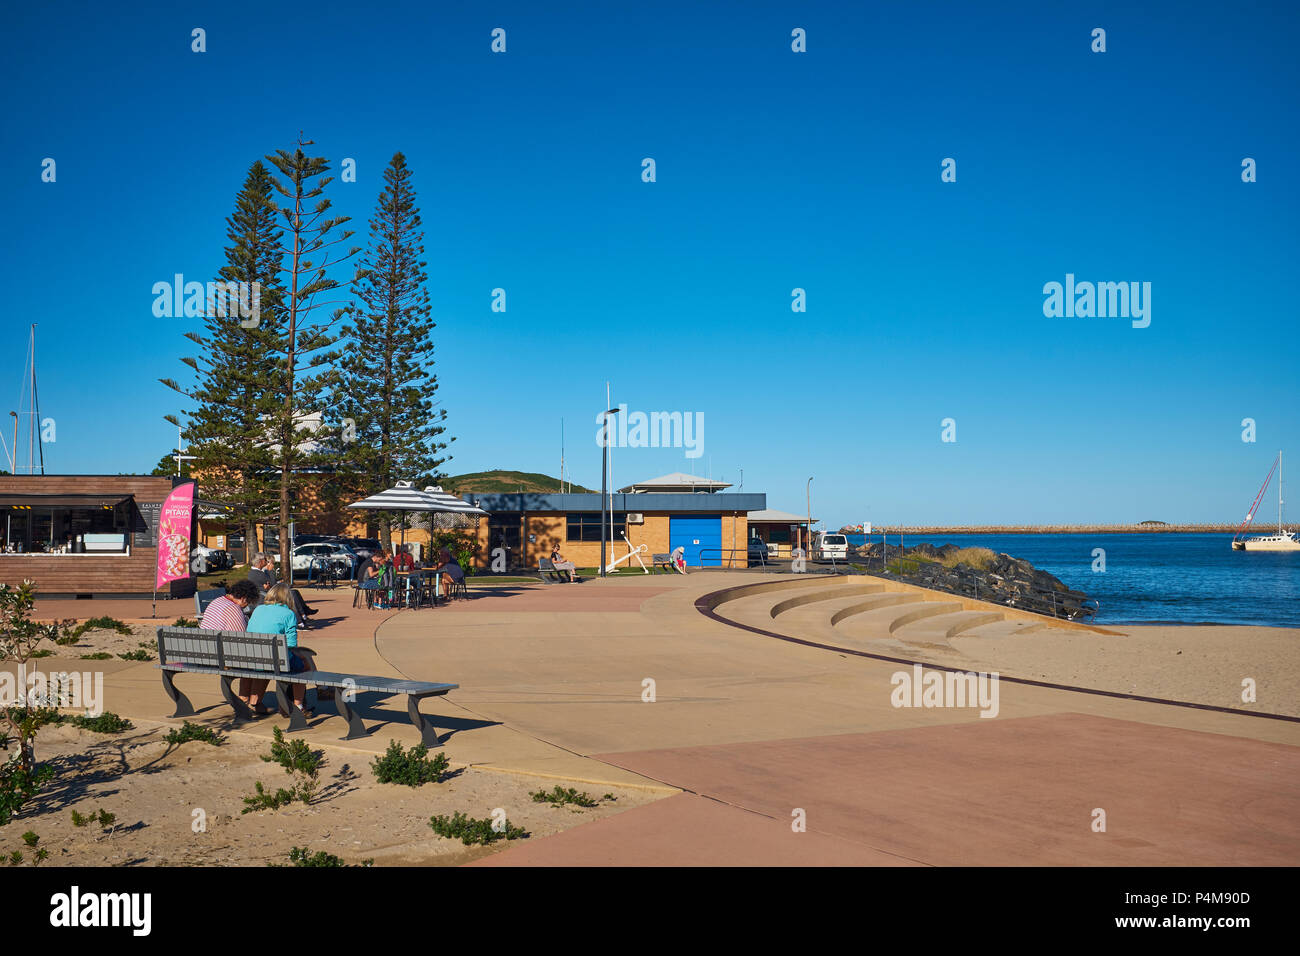 Eating area at Jetty Foreshores Park with a bright cloudless sky, Jetty Beach, Coffs harbour, New South Wales, Australia - Stock Image